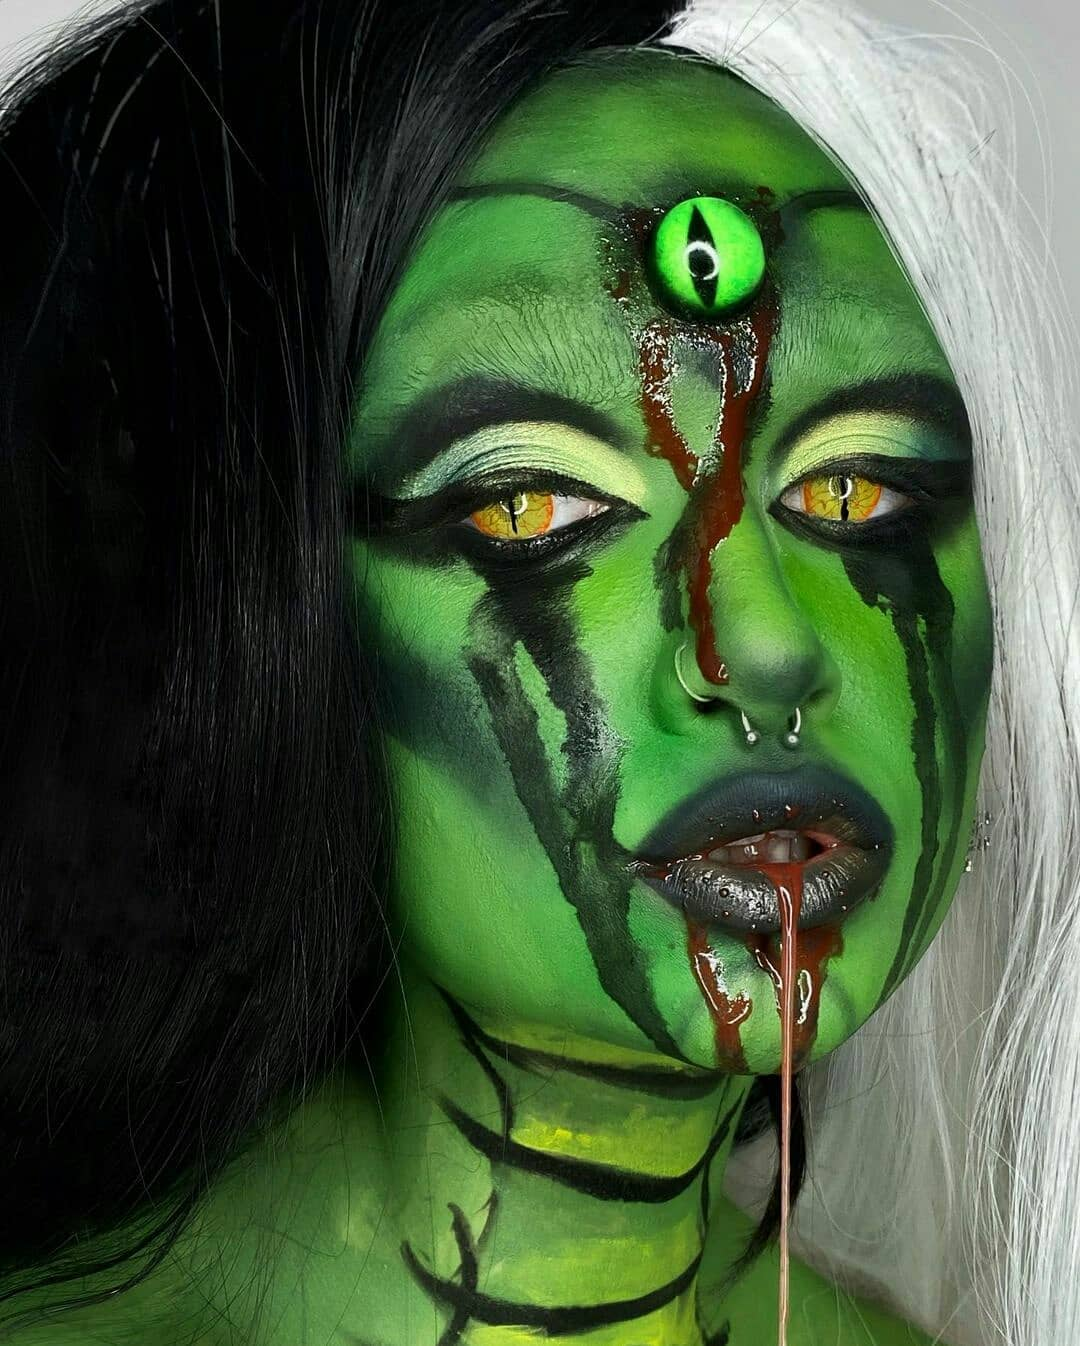 Bloody Reptile for Scary Halloween Costumes for Women